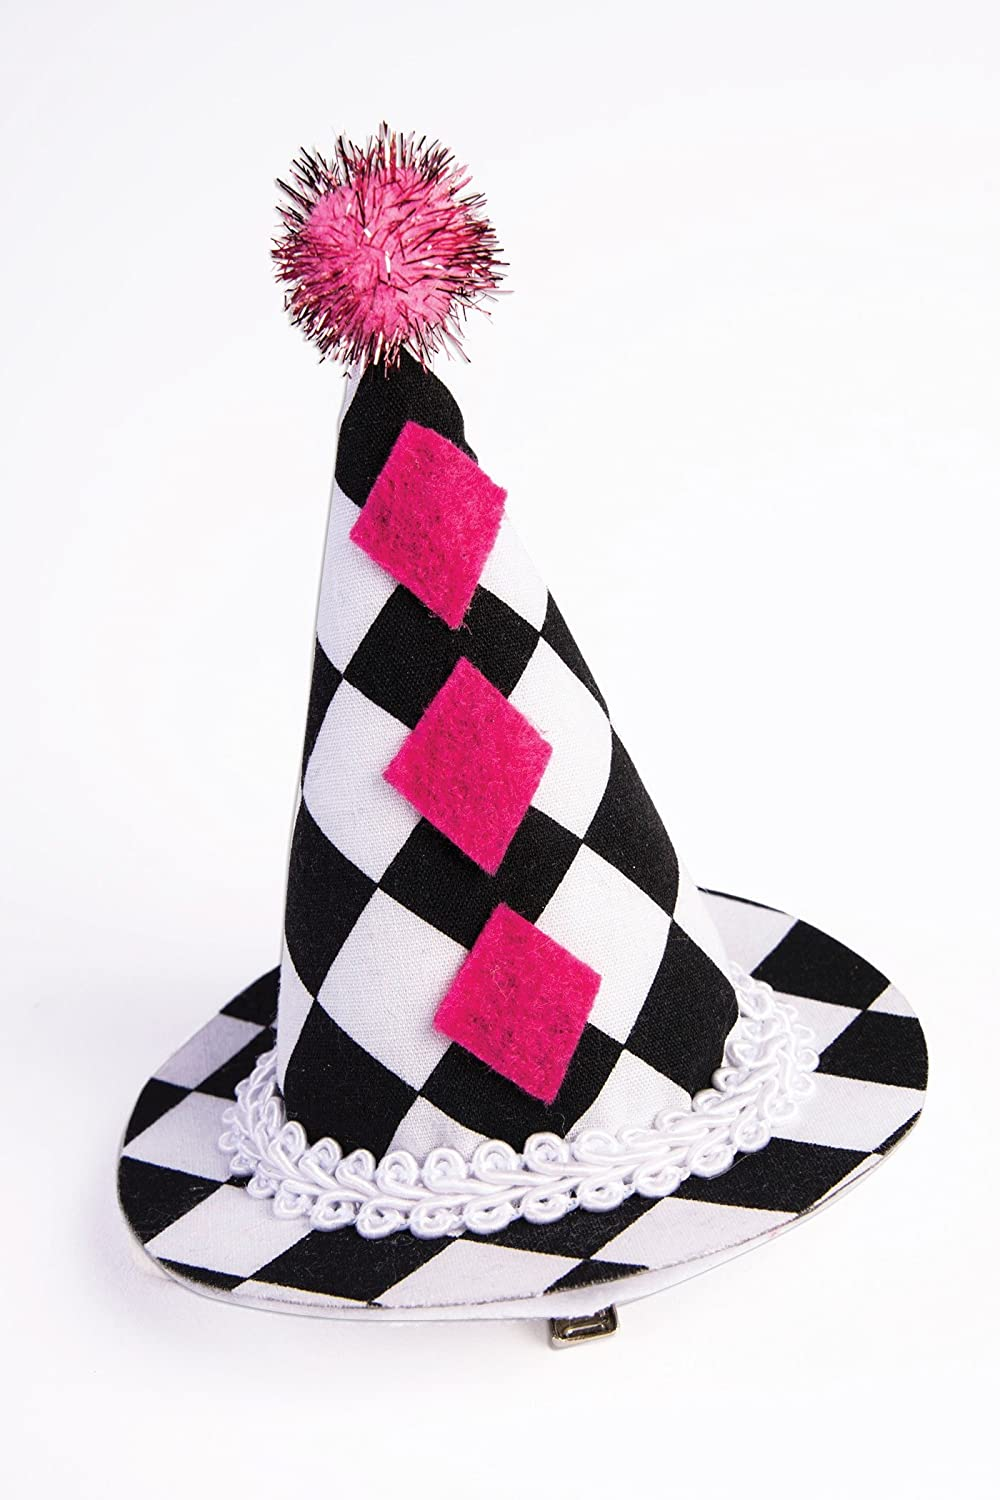 Mini Harlequin Clown Cone Hat Pompom Women/'s Costume Accessory Black White